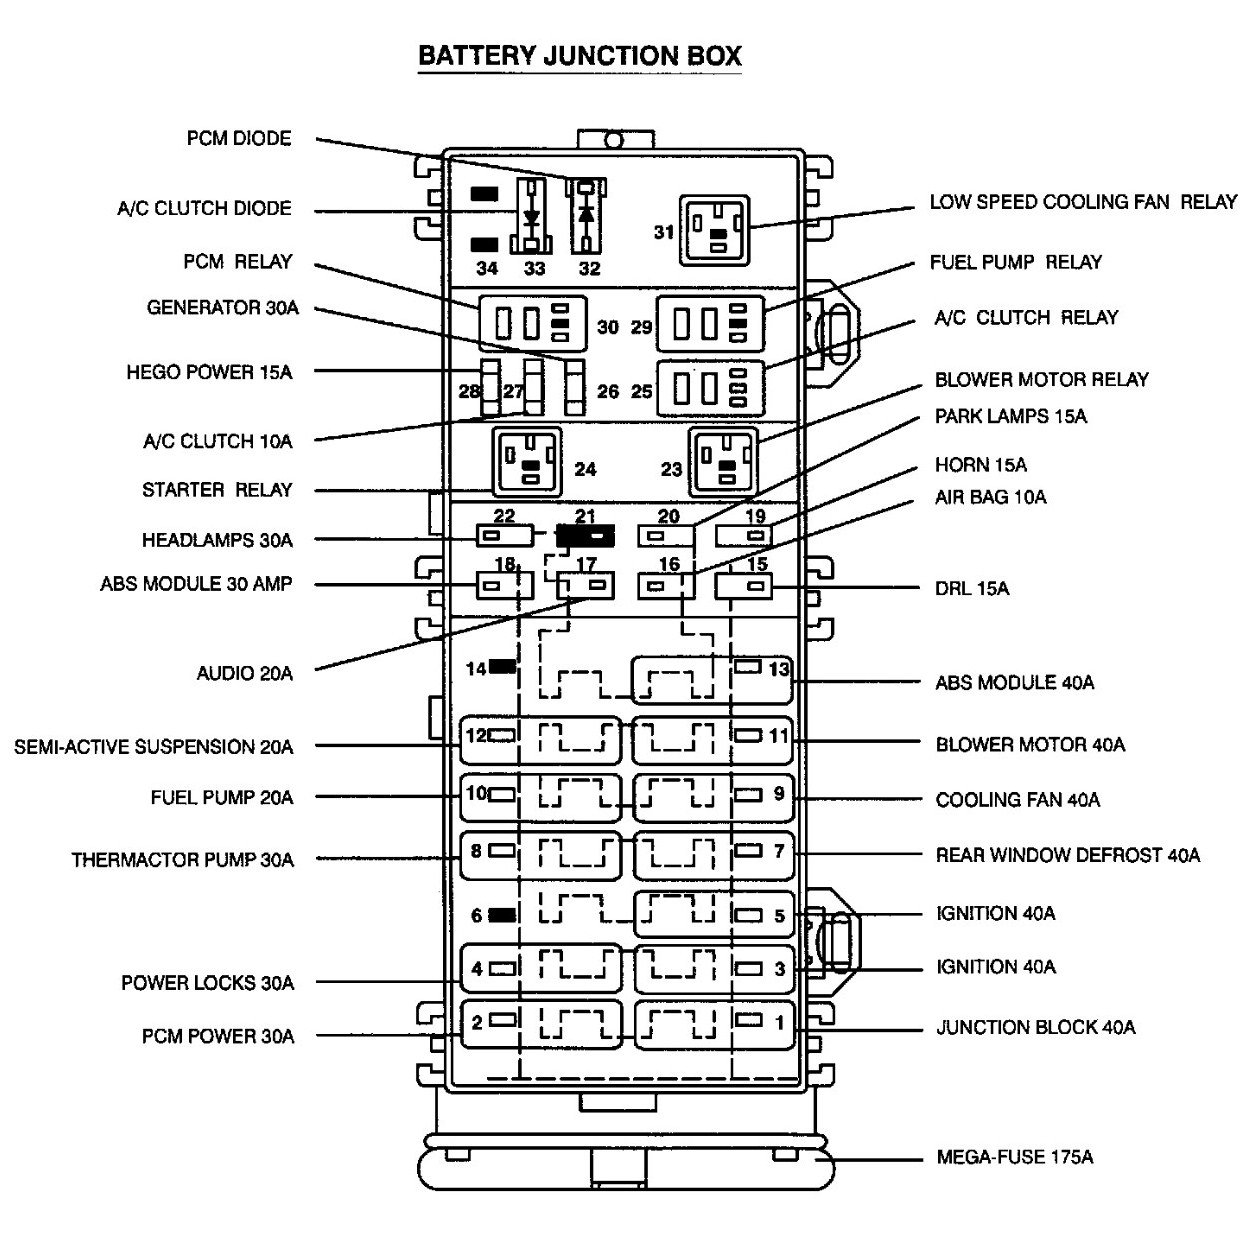 2001 ford f350 ac relay location html